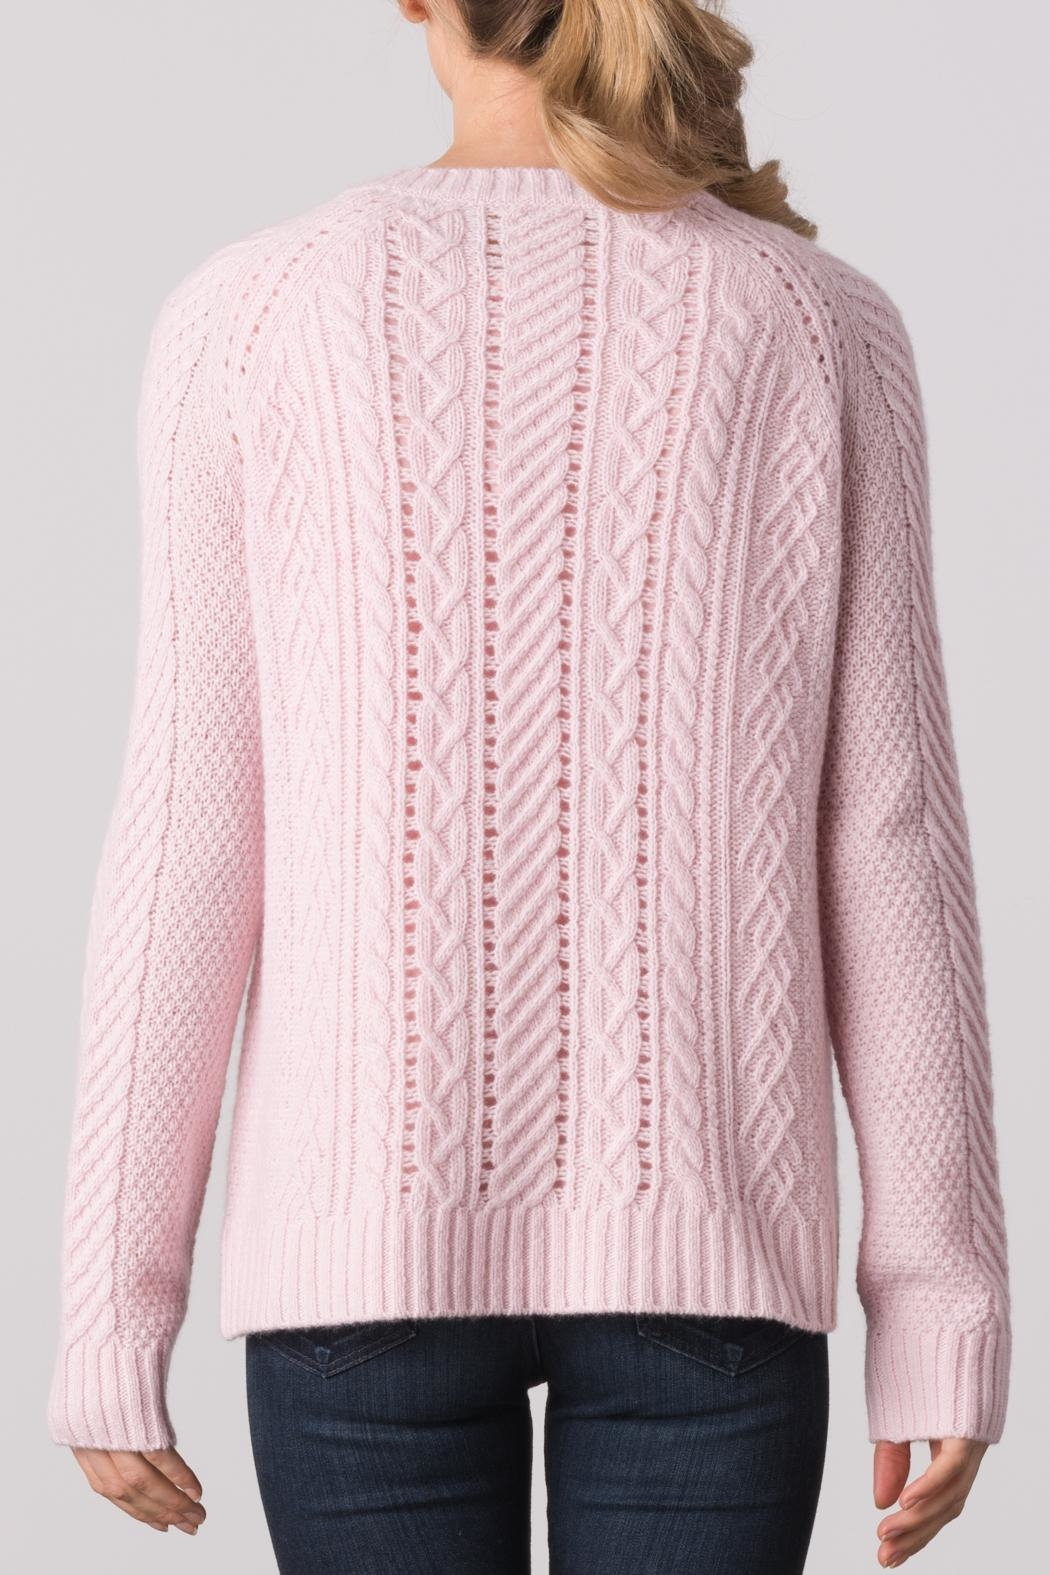 Margaret O'Leary Sarah Cable Crew Sweater - Side Cropped Image